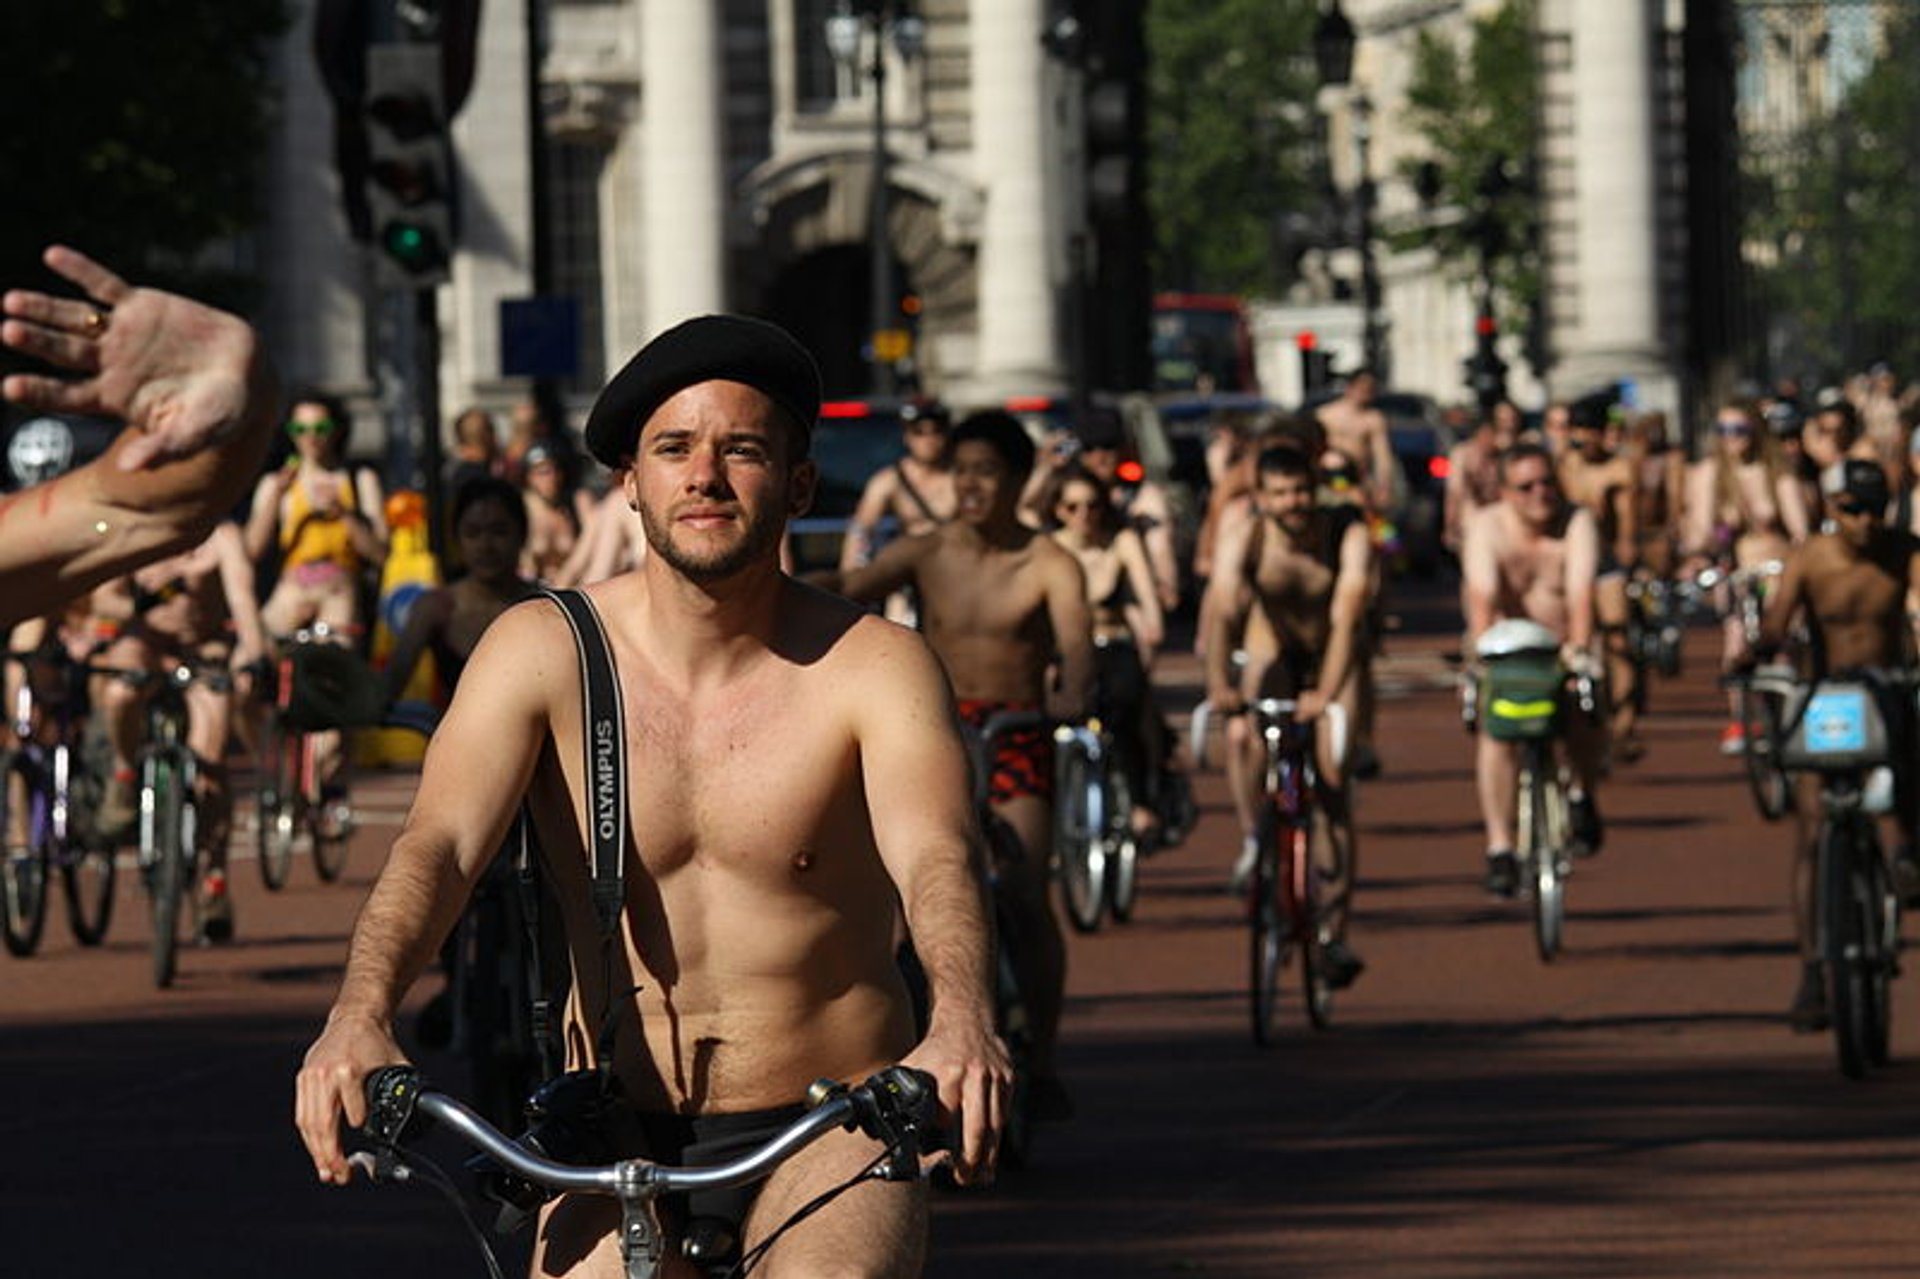 World Naked Bike Ride in London on The Mall street, London, England, Great Britain 2020